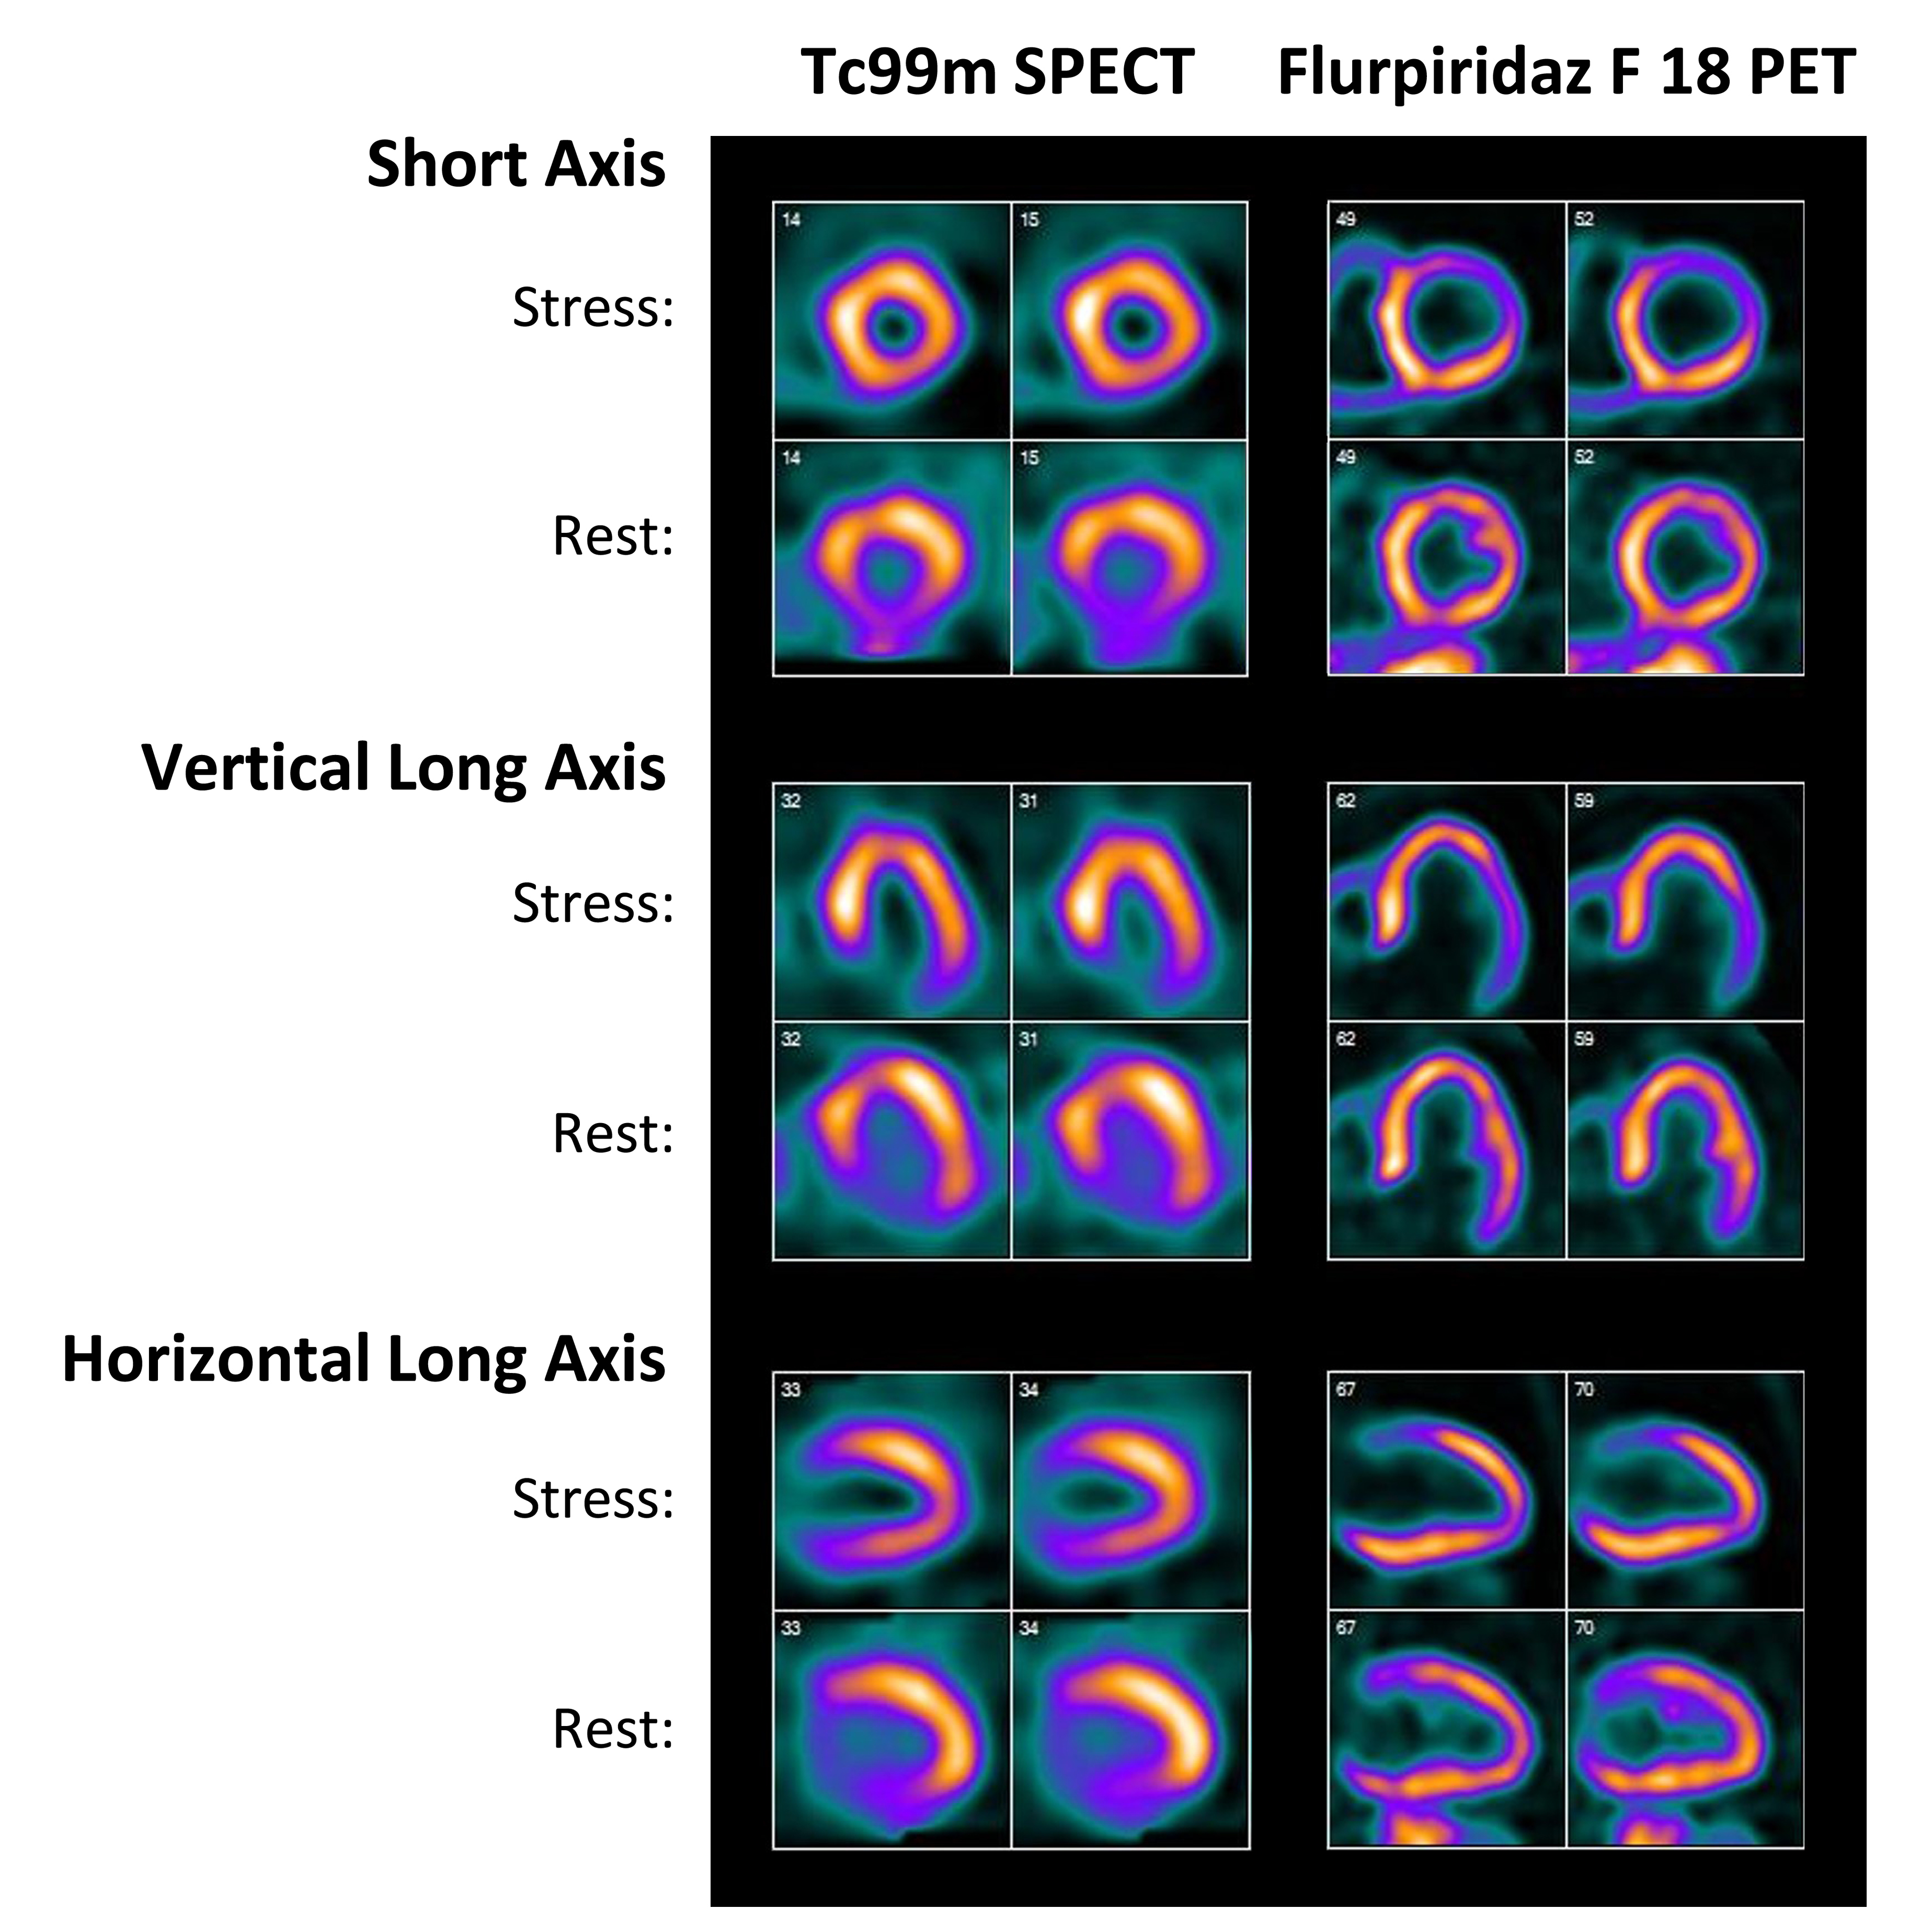 Lantheus Presents New Data on the Effectiveness of Novel PET Cardiac  Imaging Agent Flurpiridaz F 18 in Obese Patients with Suspected Heart  Disease at ACC ...